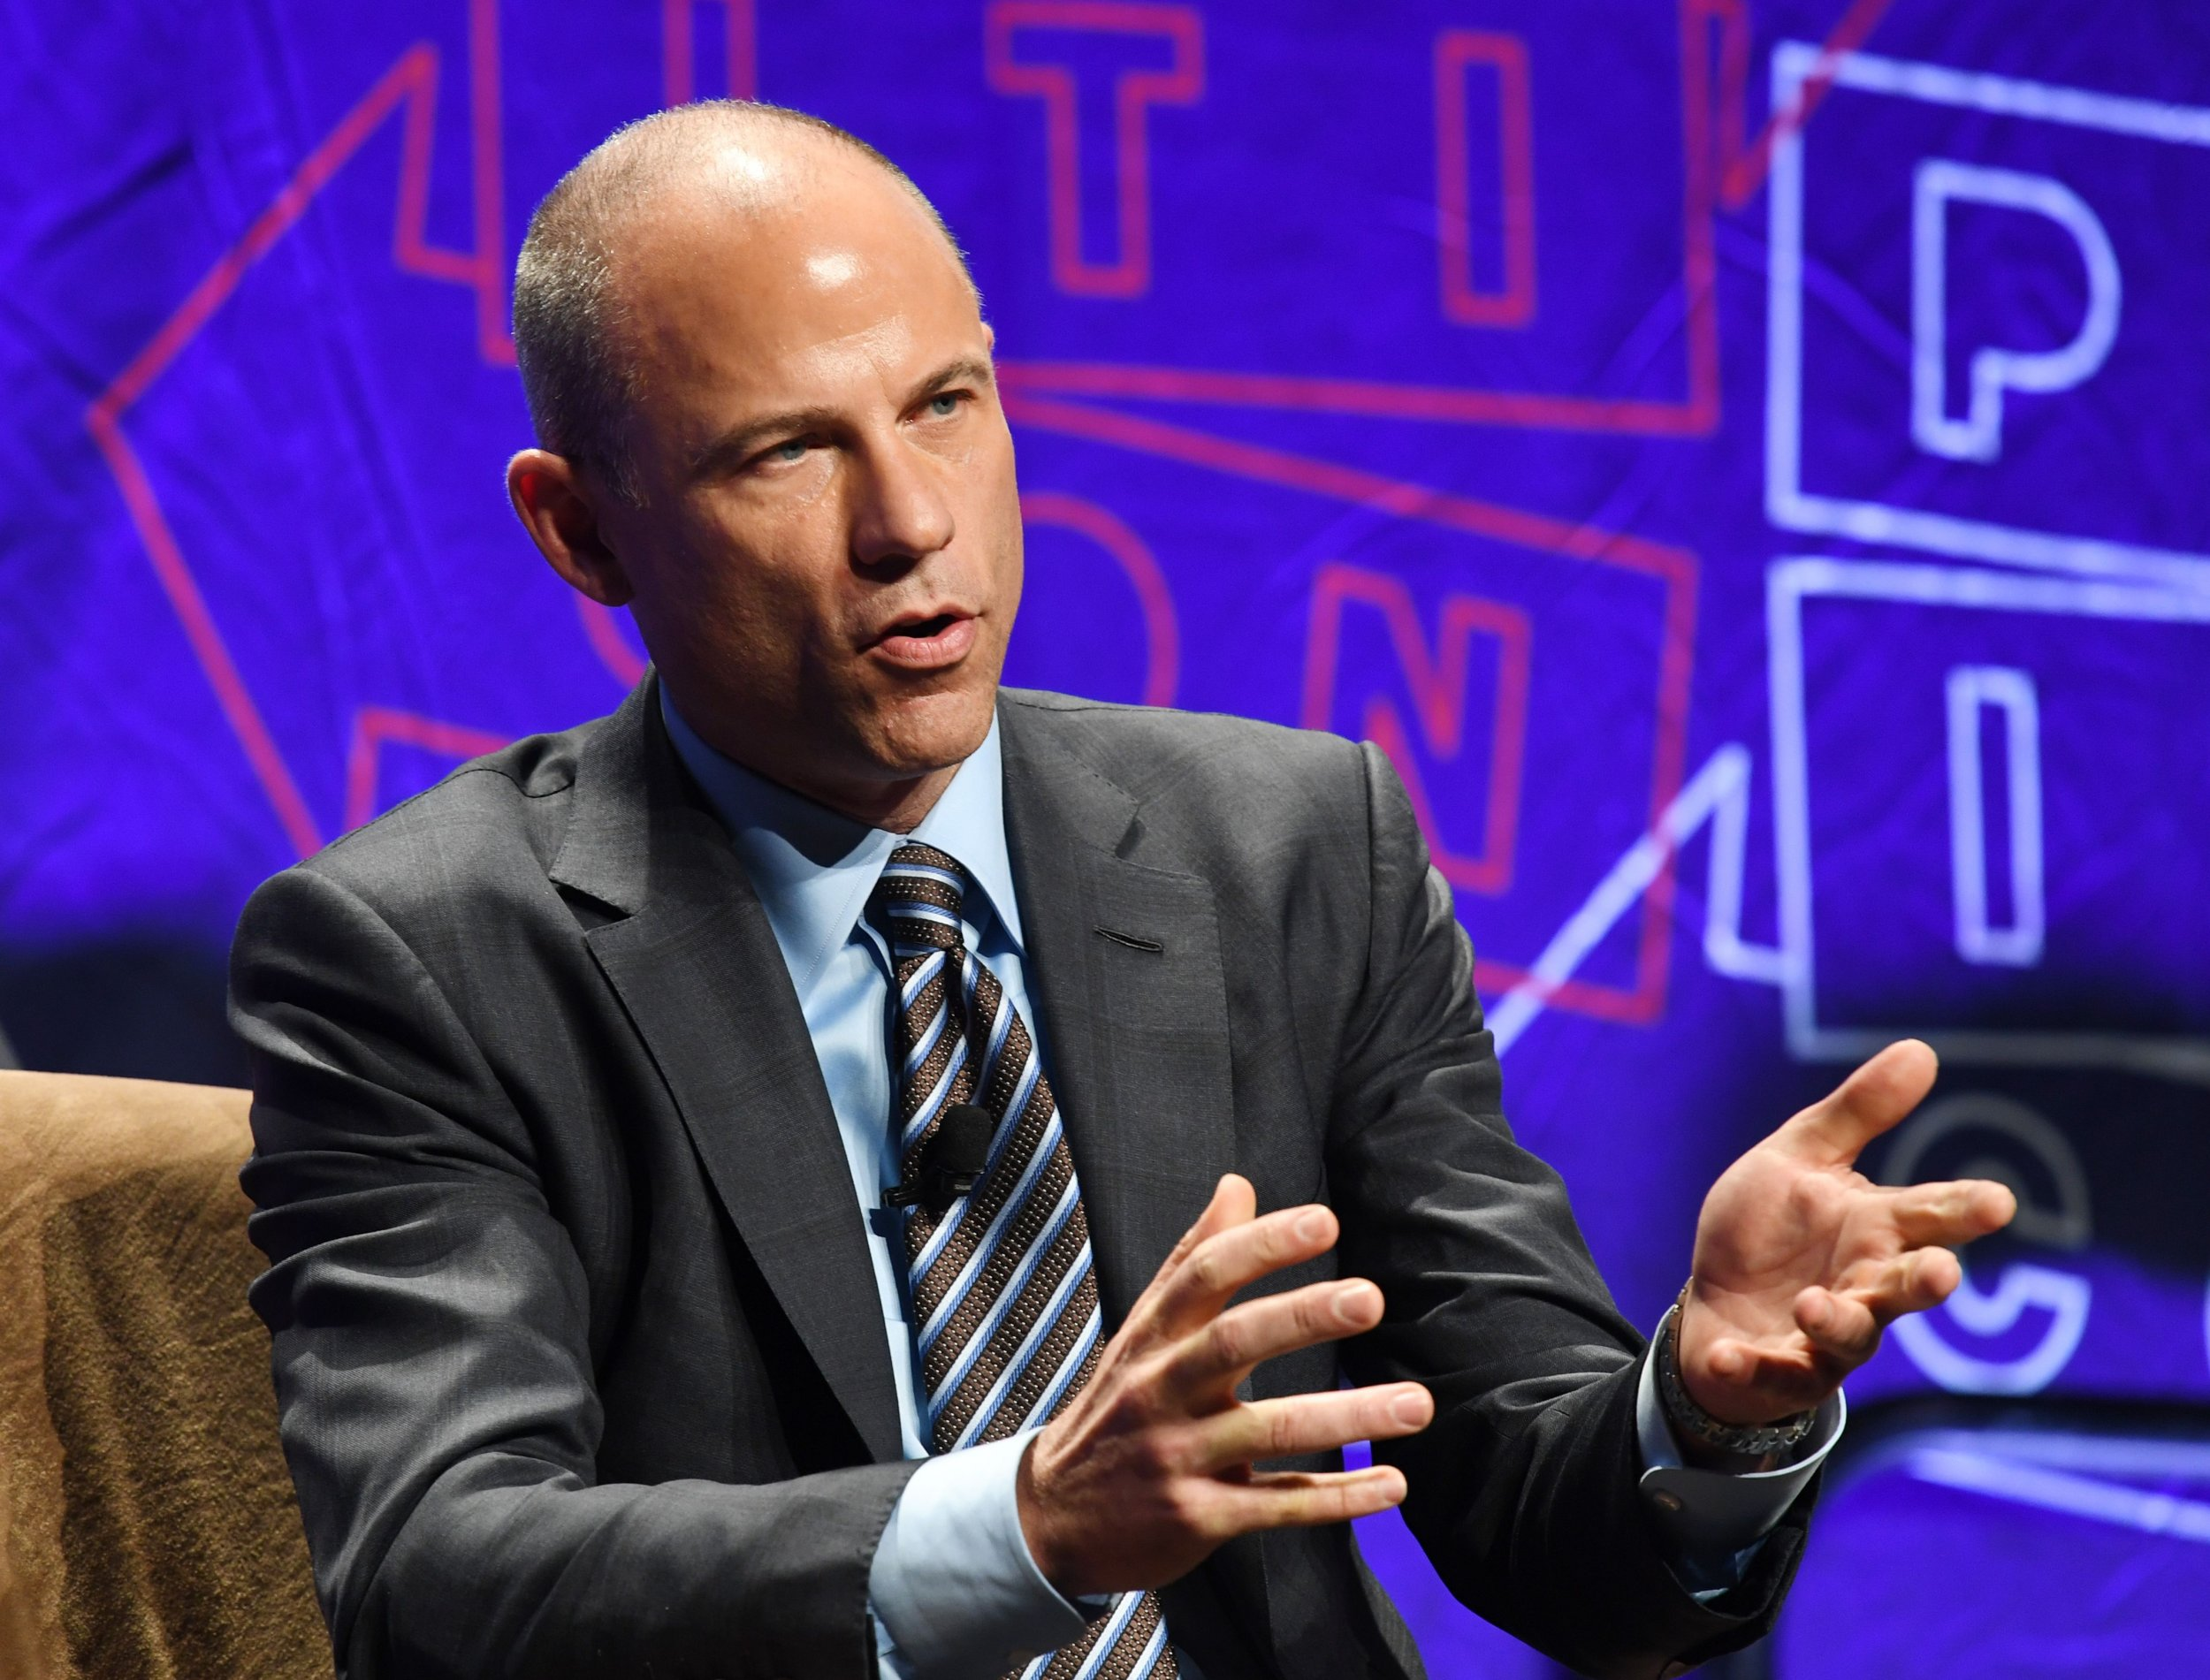 Michael Avenatti: Election Results Confirm Democrats Who Fight 'Fire With Fire' Win